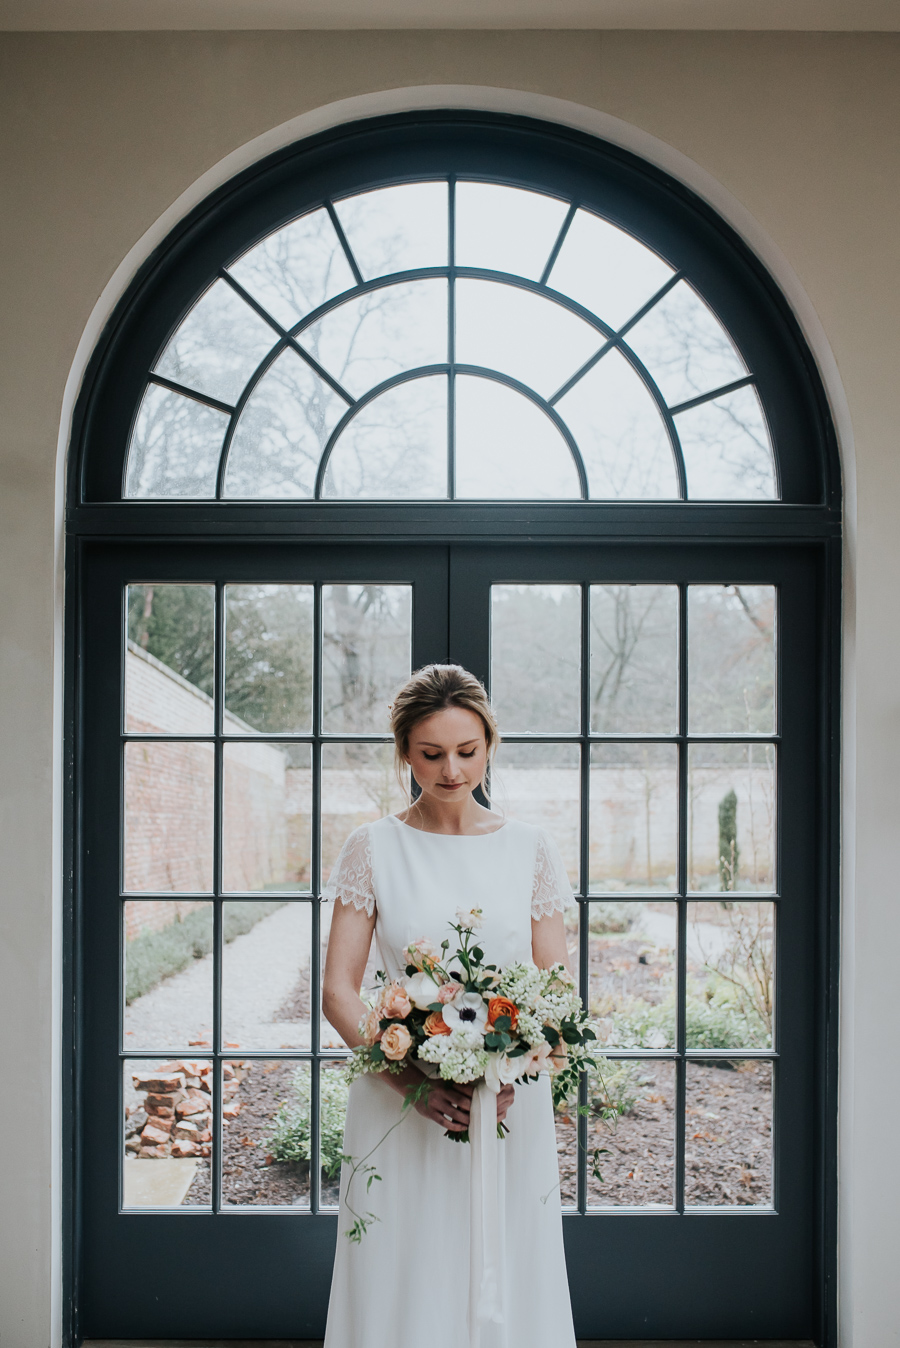 Michelle Cordner Photography on the English Wedding Blog (7)